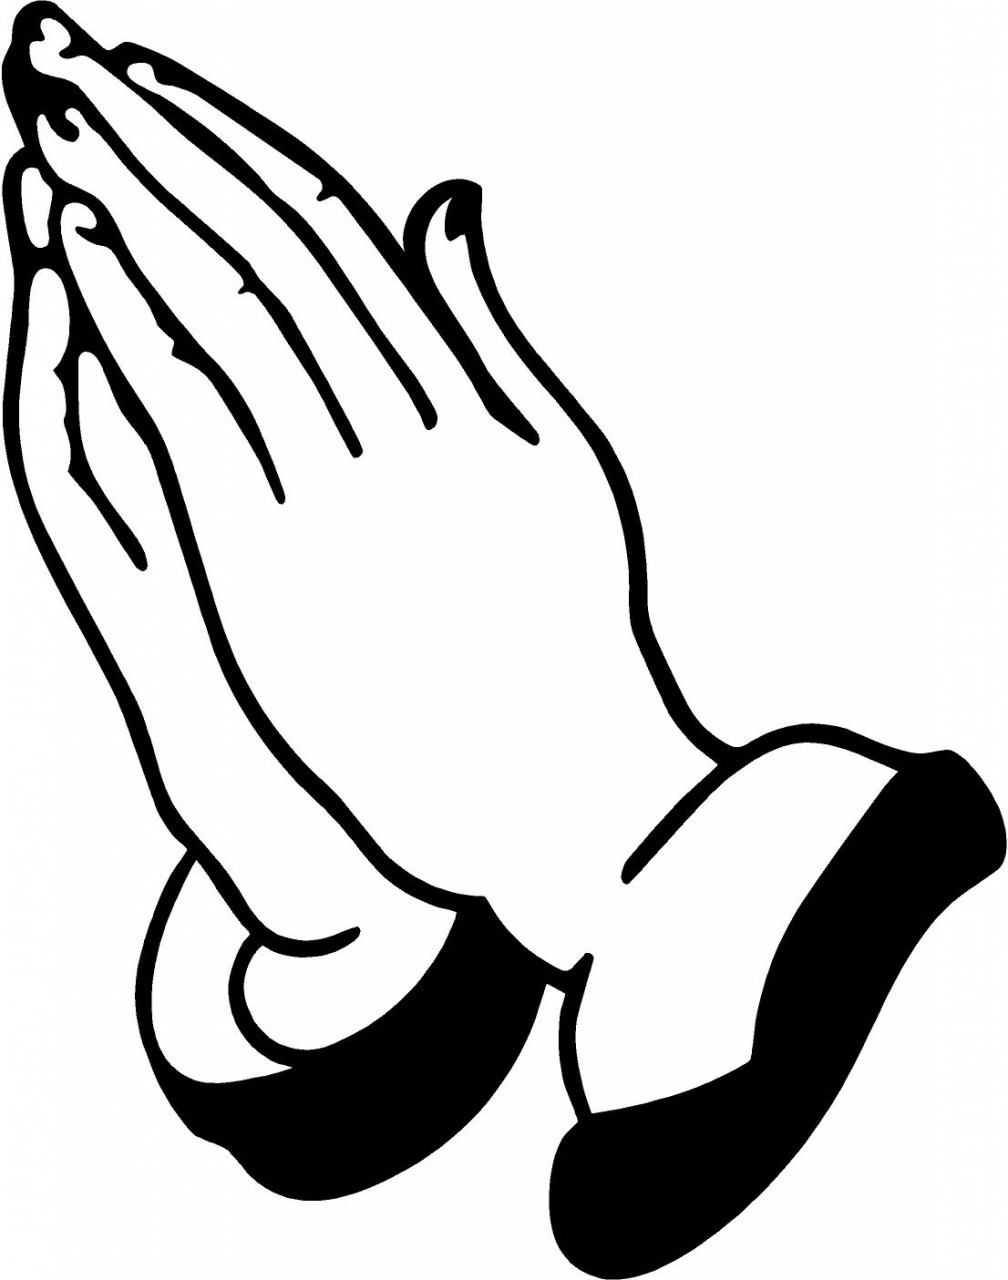 Laying on of hands clipart.